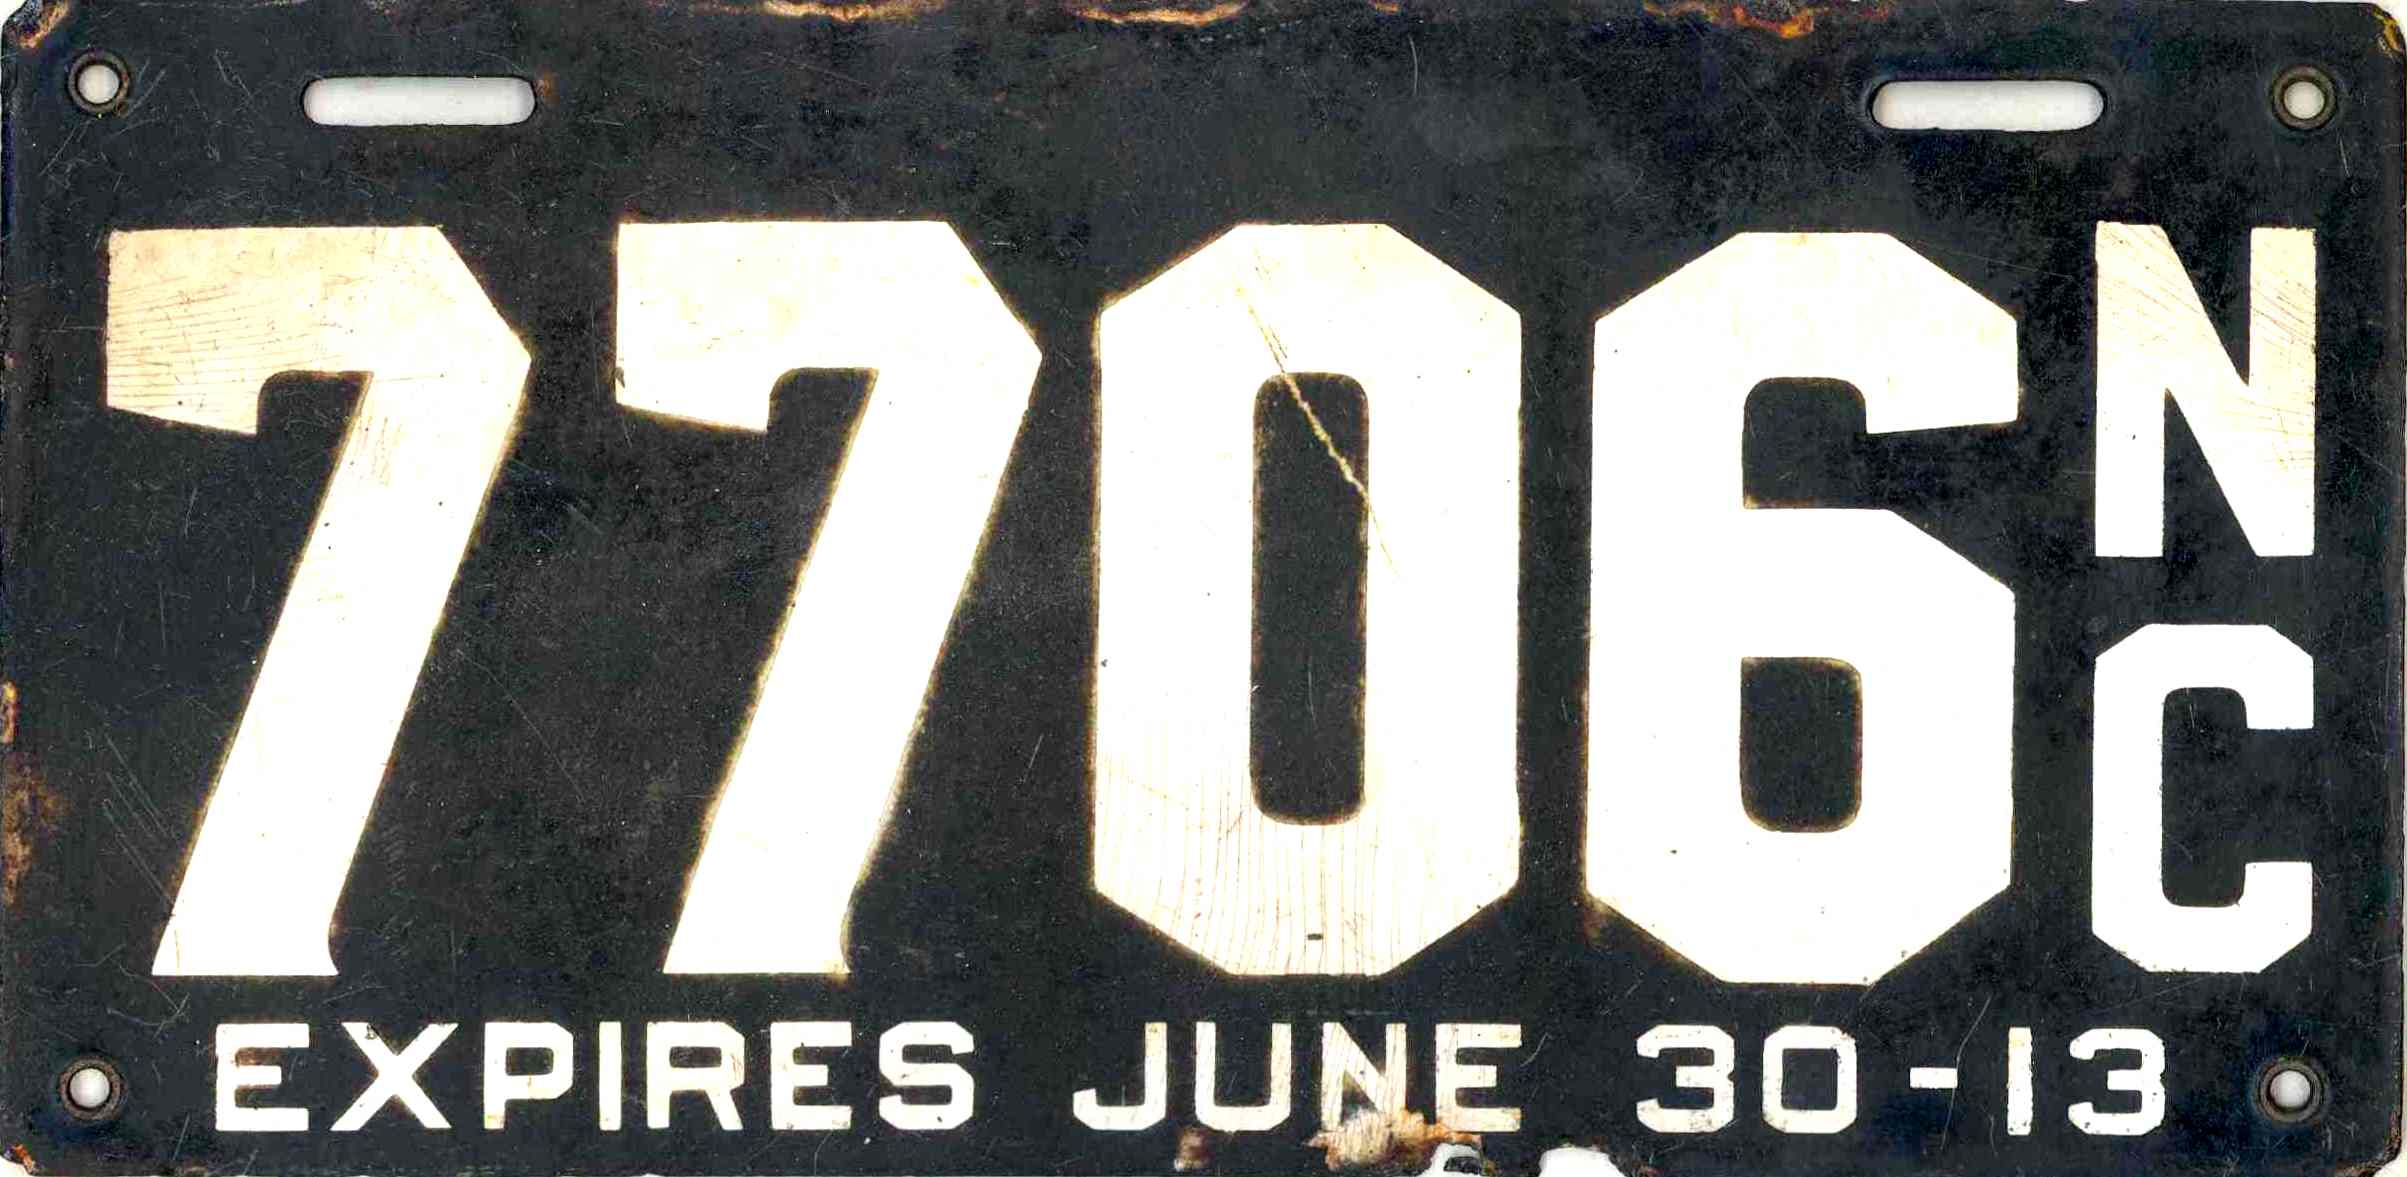 ARCHIVE: North Carolina Porcelain License Plates